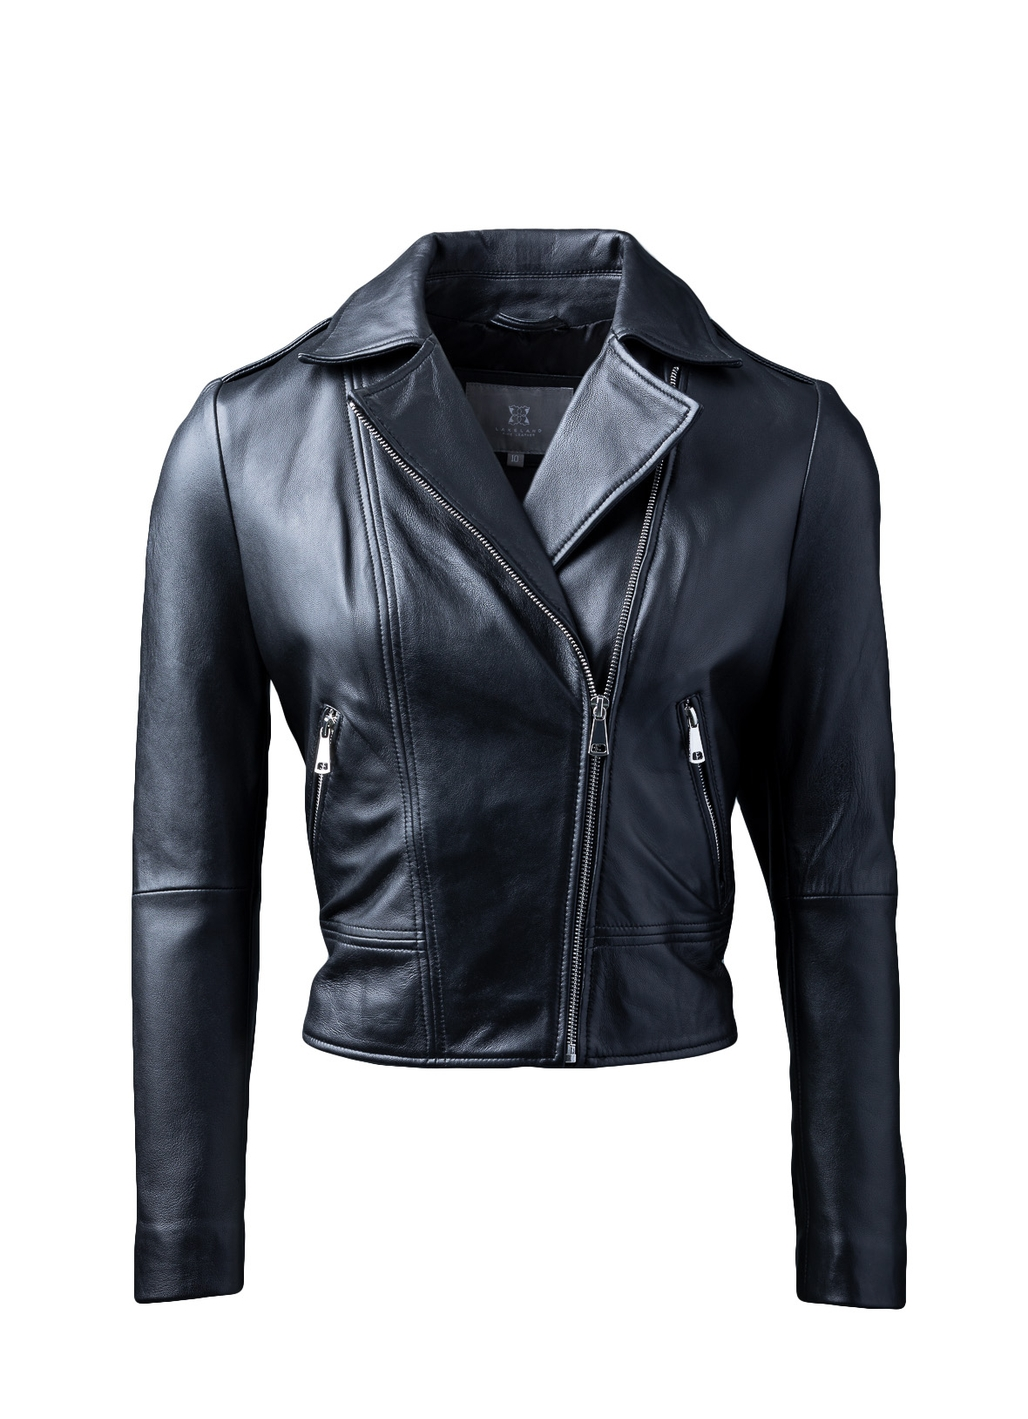 Classic Leather Biker Jacket in Black